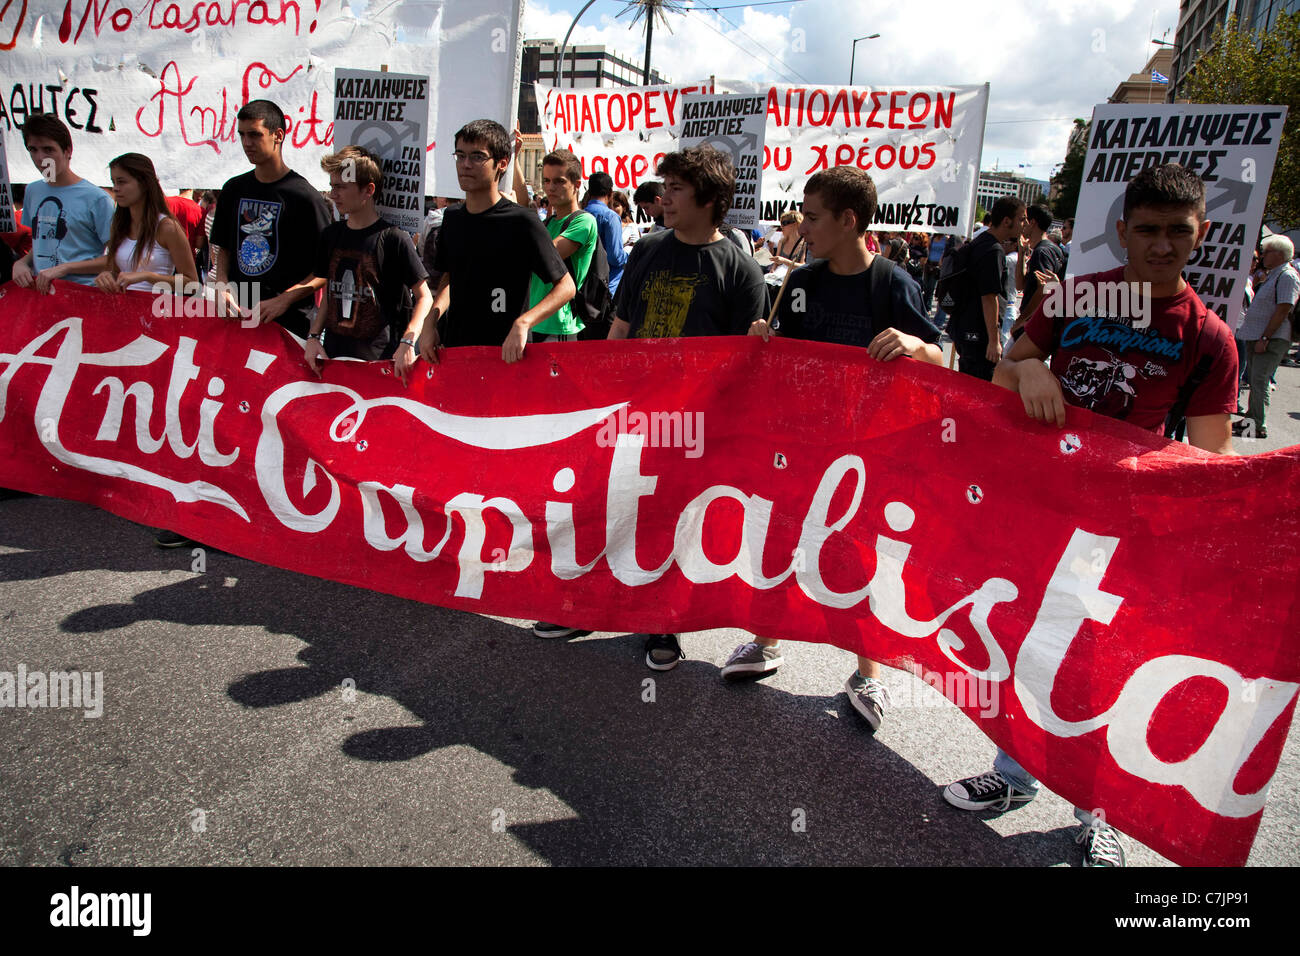 Students march with anti capitalist banner in demonstration against austerity measures and planned education reforms - Stock Image